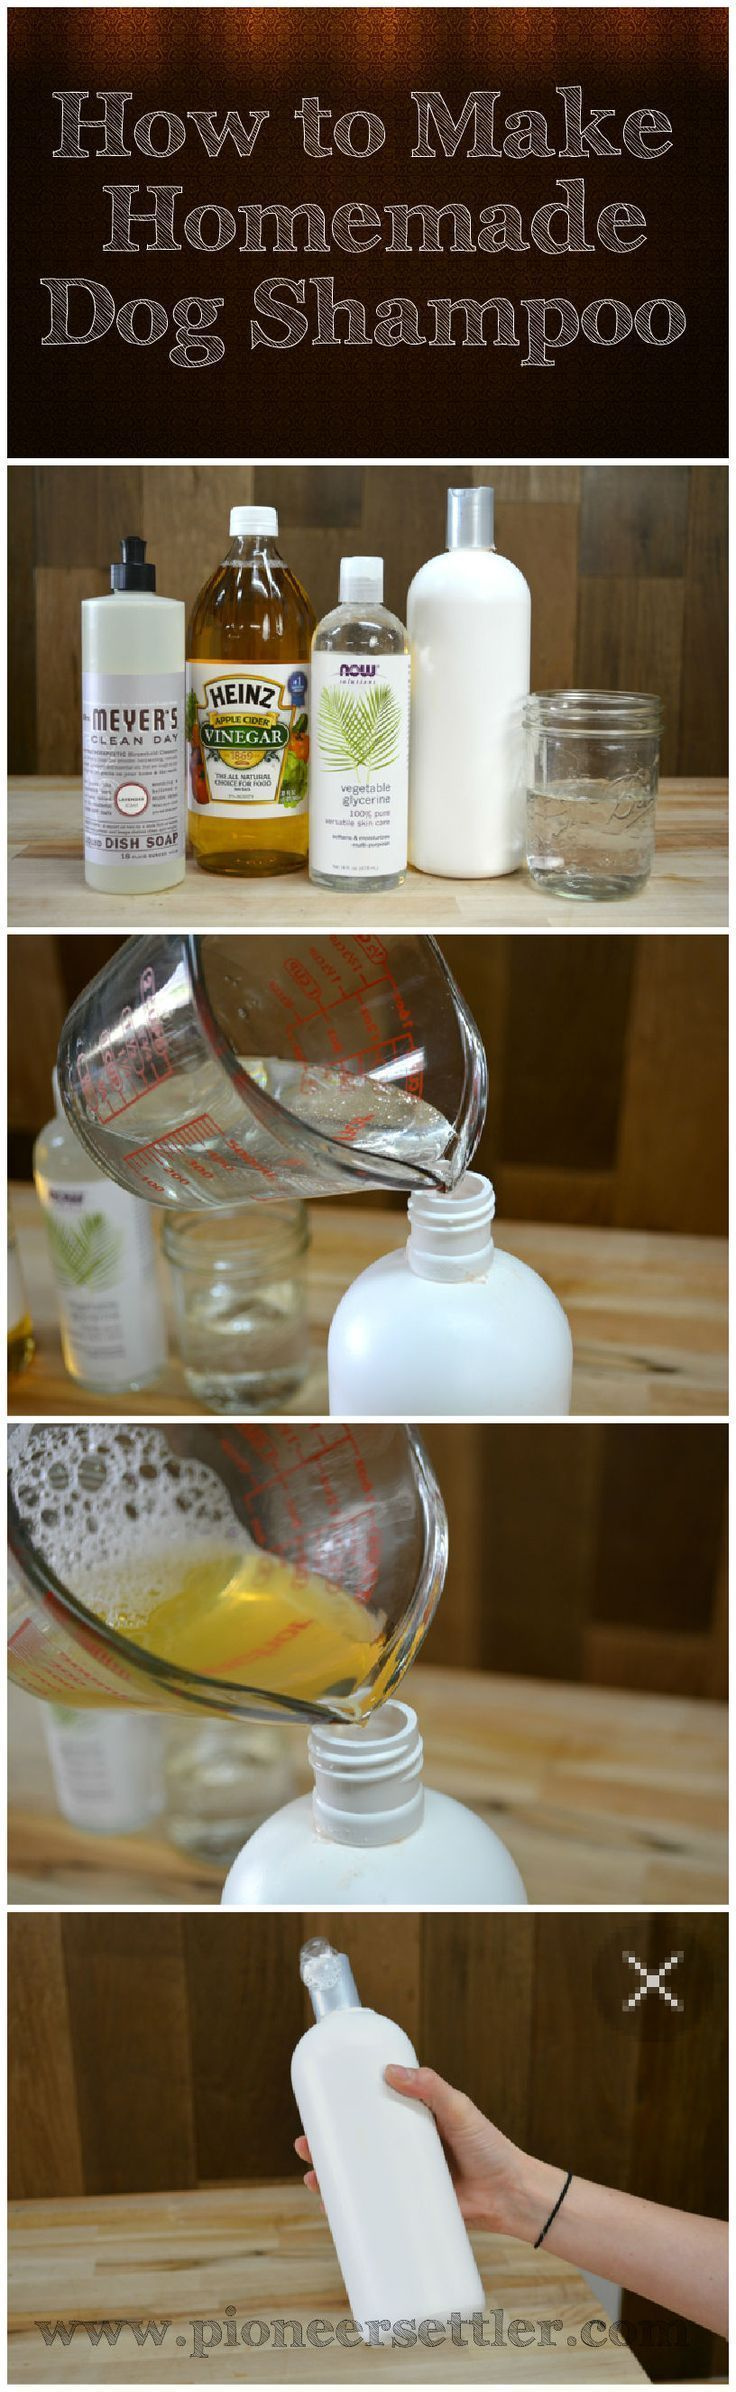 How to Make Homemade Dog Shampoo | Homesteading Tips and Ideas by Pioneer Settler at http://pioneersettler.com/make-homemade-dog-shampoo/